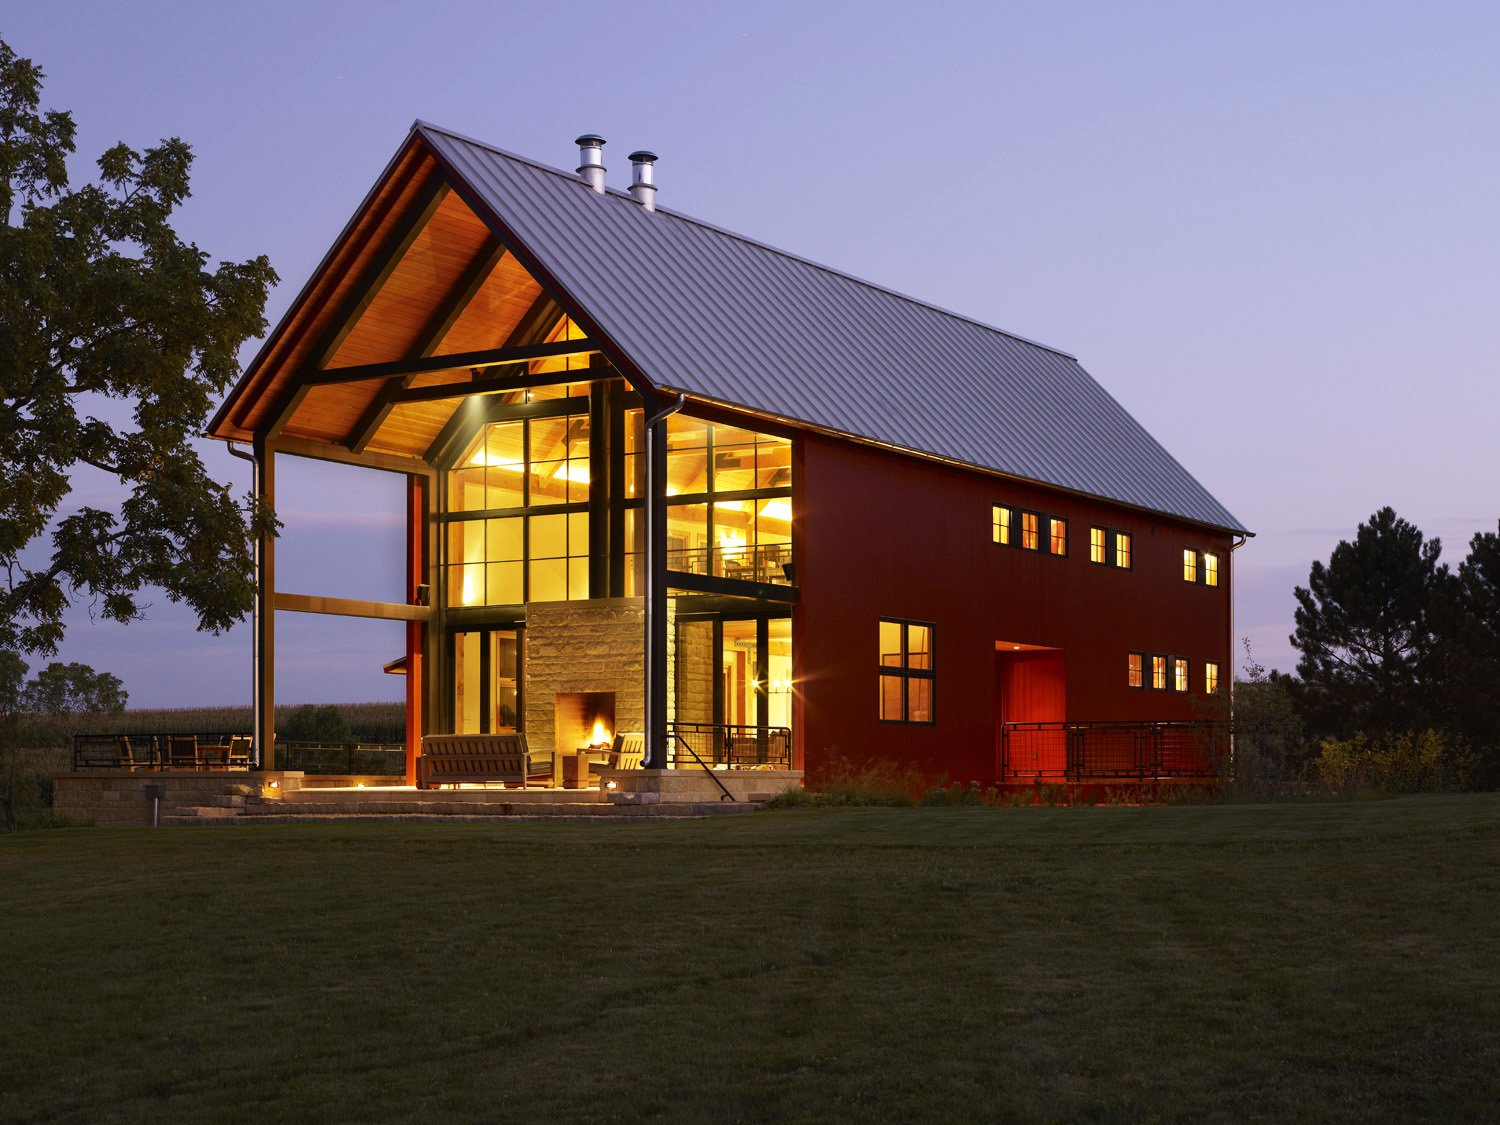 Don't let its traditional silhouette fool you: this home features a grid-tied solar photovoltaic array just south of the property, which supplies the family's annual average powers usage. Large steel beams and columns flank the patio, framing views of the landscape.  A Family Salvages an 1880s Barn to Create Their Nearly-Net Zero Escape by Caroline Wallis from House of the Week: An Eco-Friendly Family Retreat Built with Reclaimed Materials